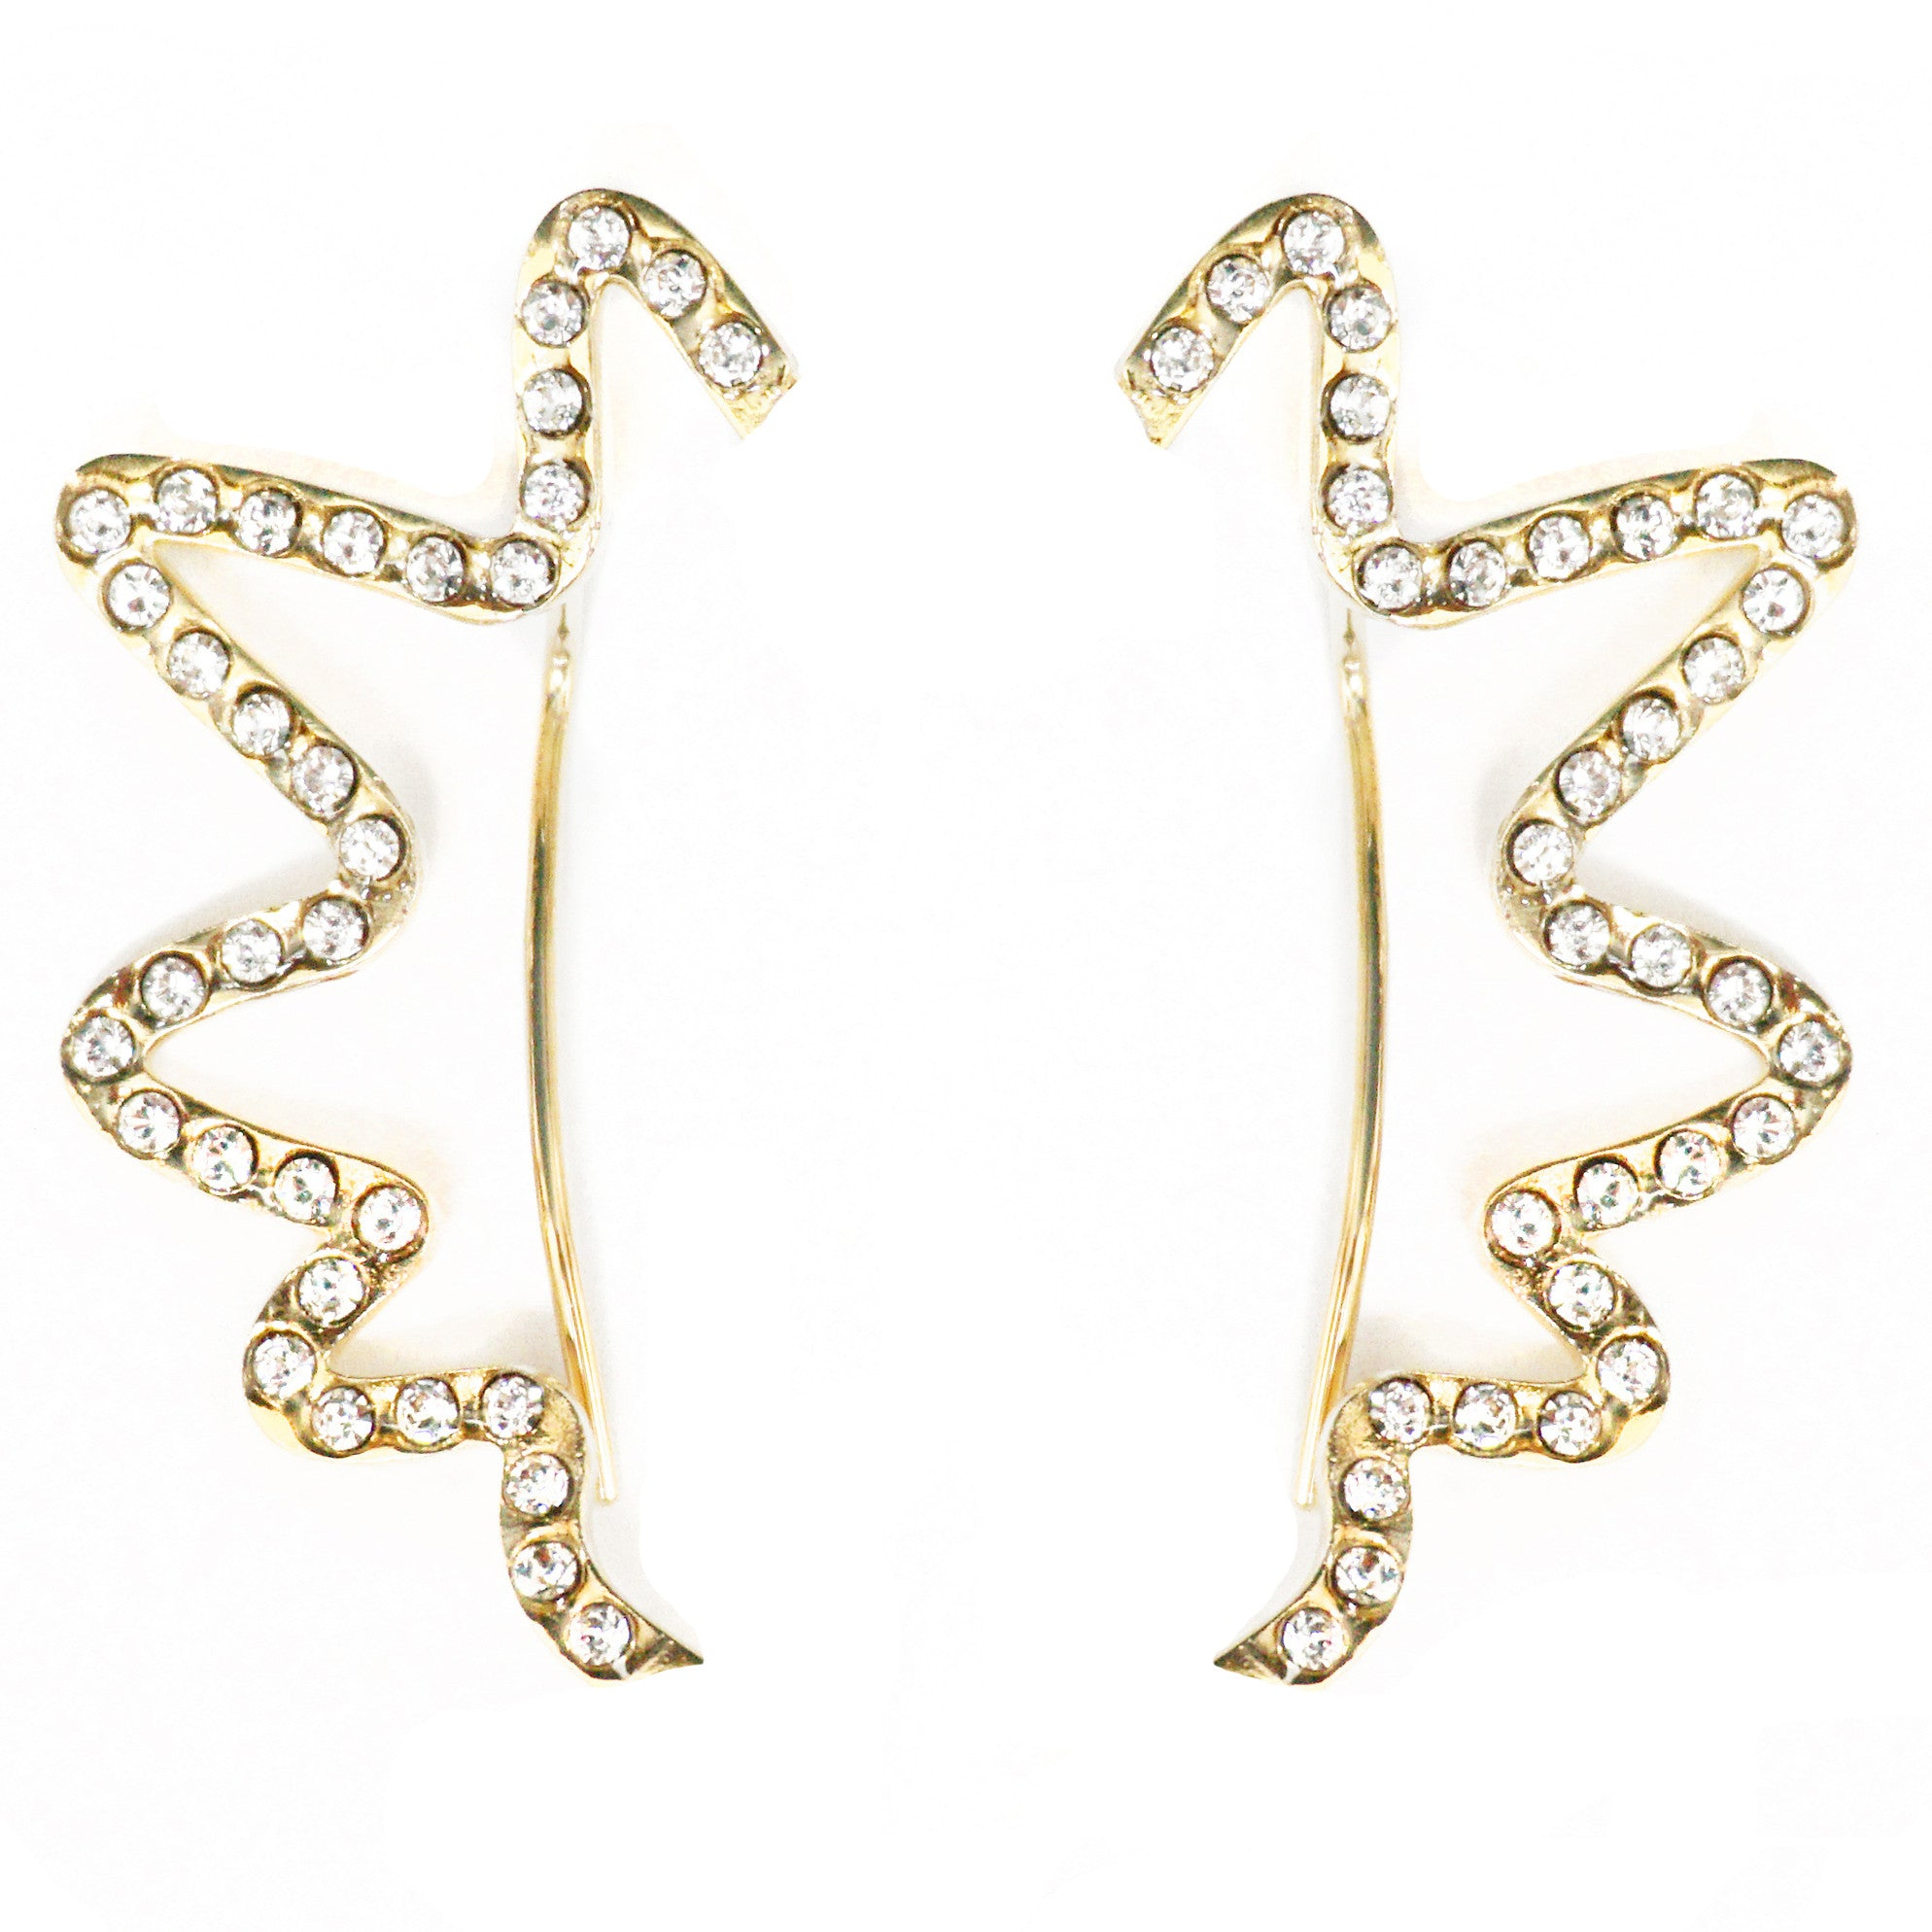 CAROLYN COLBY - CRYSTAL ZIG-ZAG EARRINGS